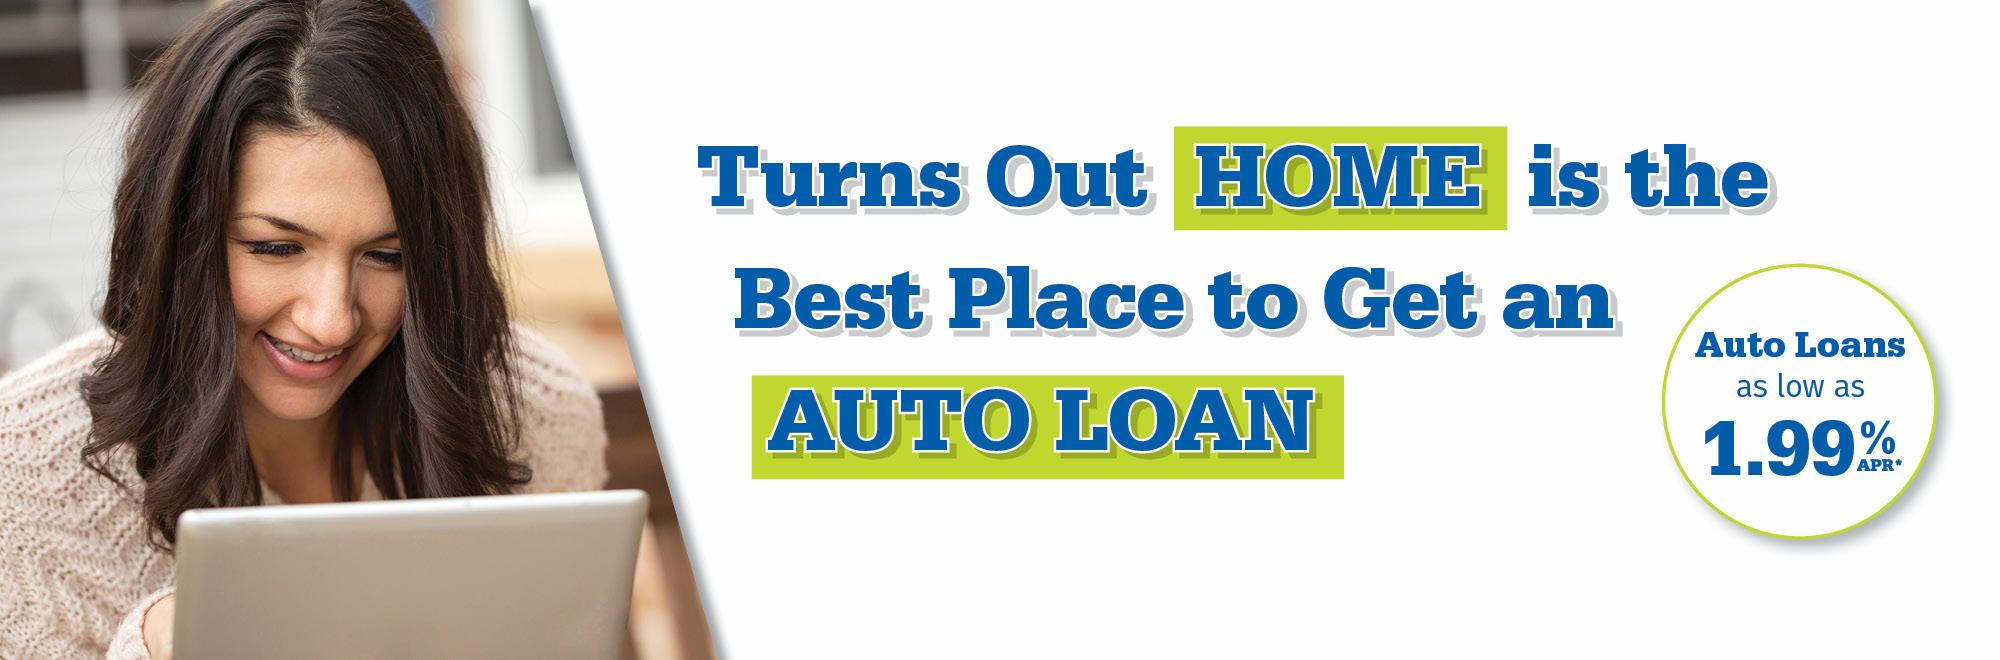 Turns out HOME is the best place to get an auto loan. Auto loans as low as 1.99% APR*